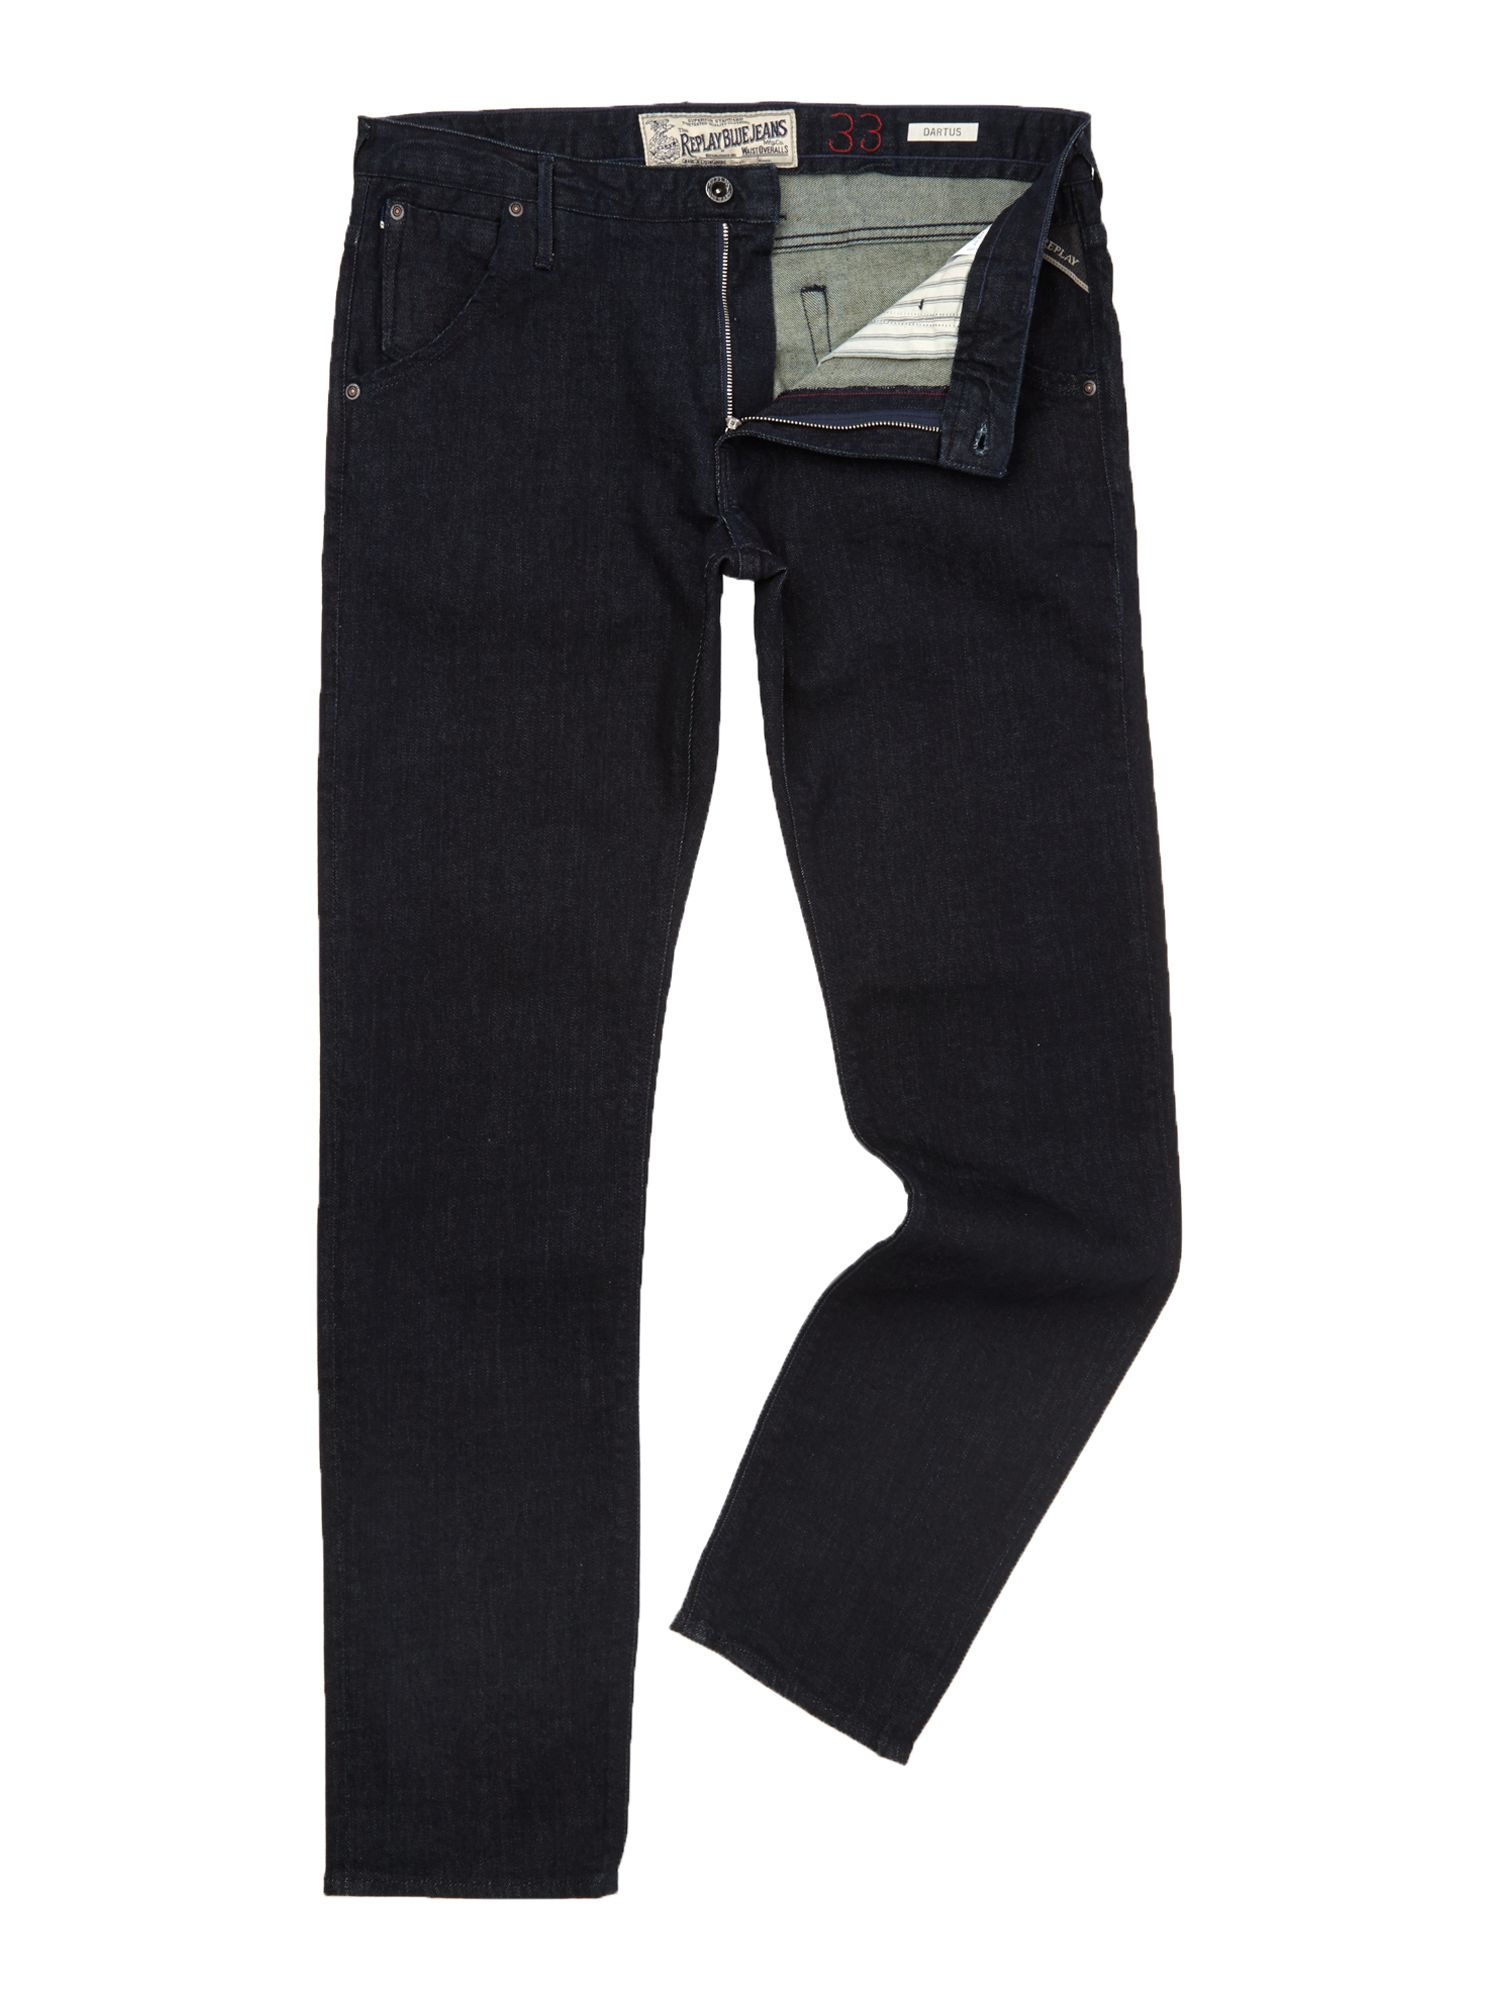 Dartus tight fit denim jeans